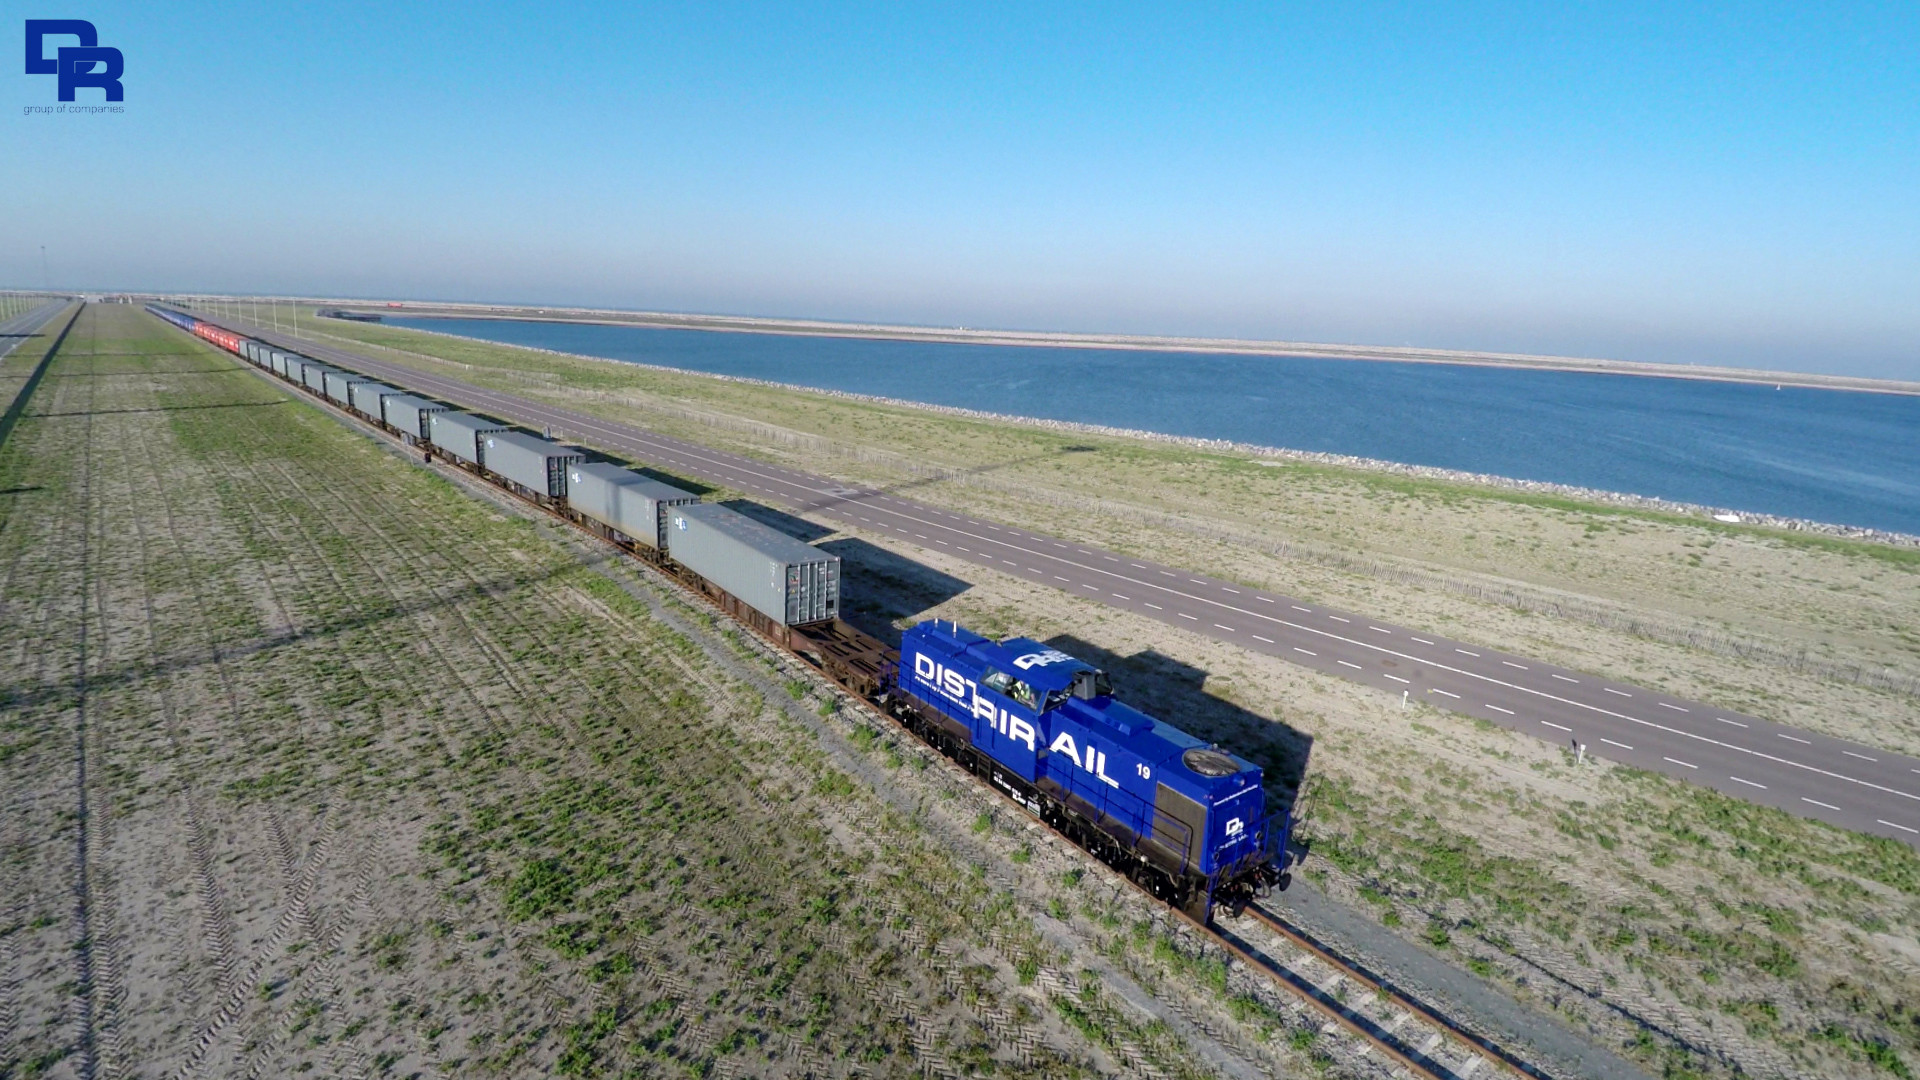 Distri Rail new face of Rotterdam-Milan freight train